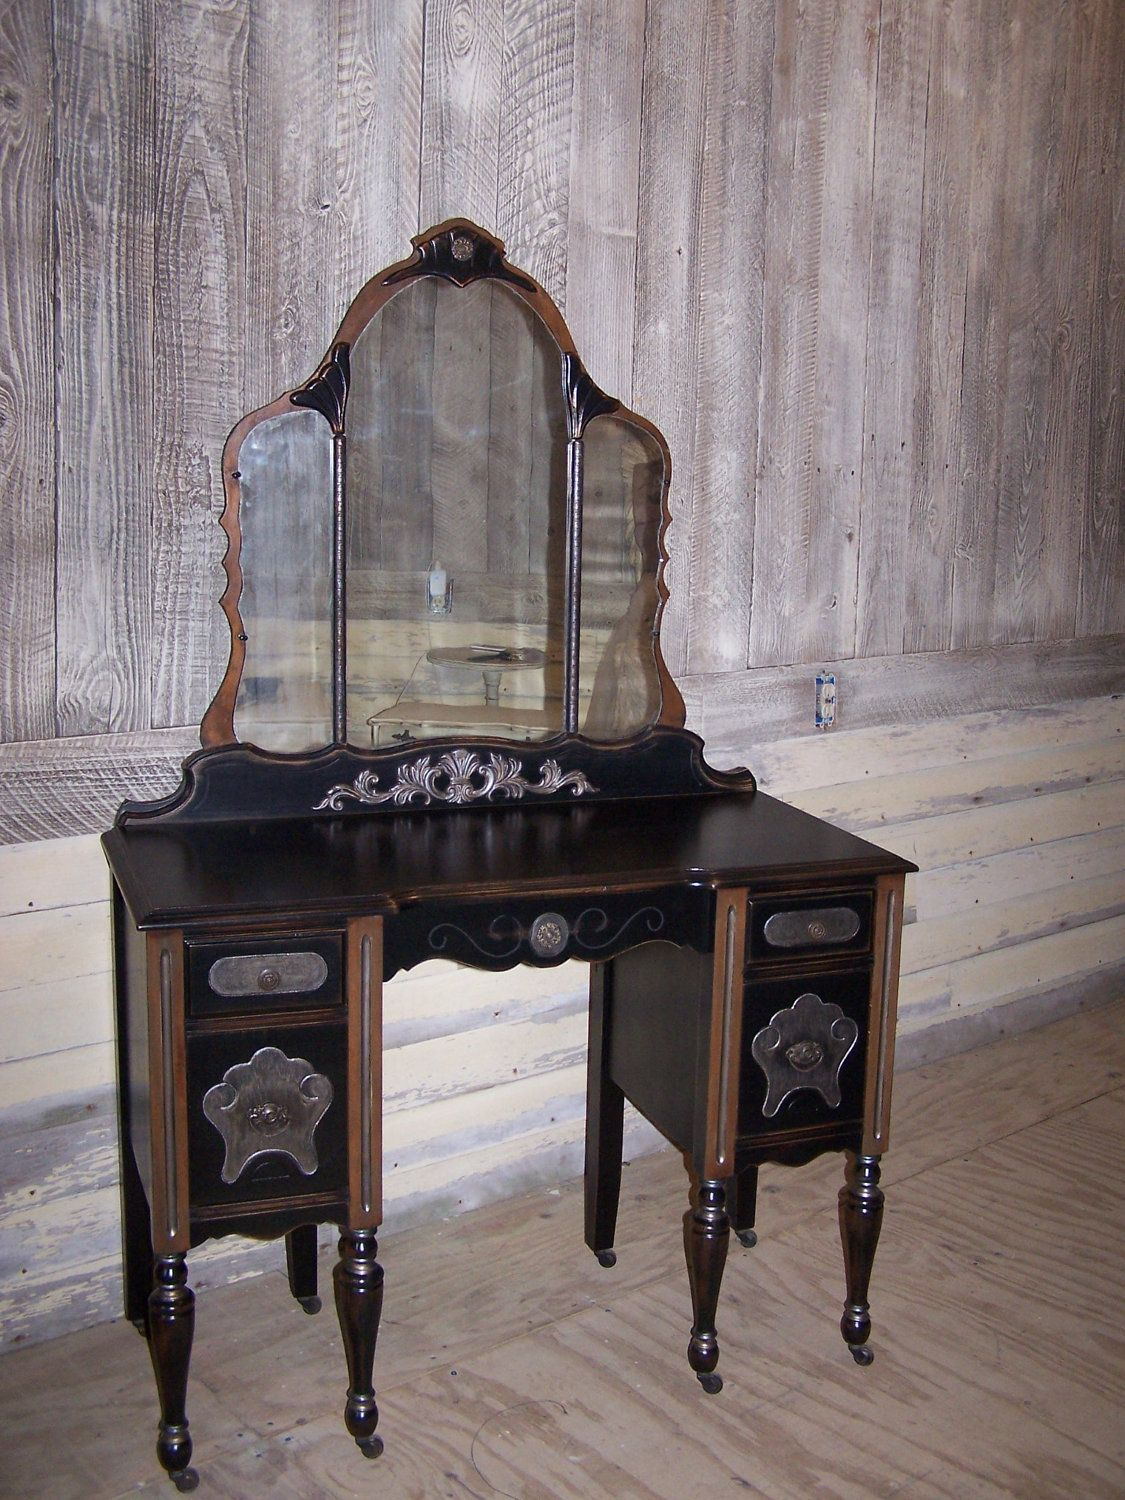 1920s Gorgeous And Glam One Of A Kind Vintage Vanity Desk Black